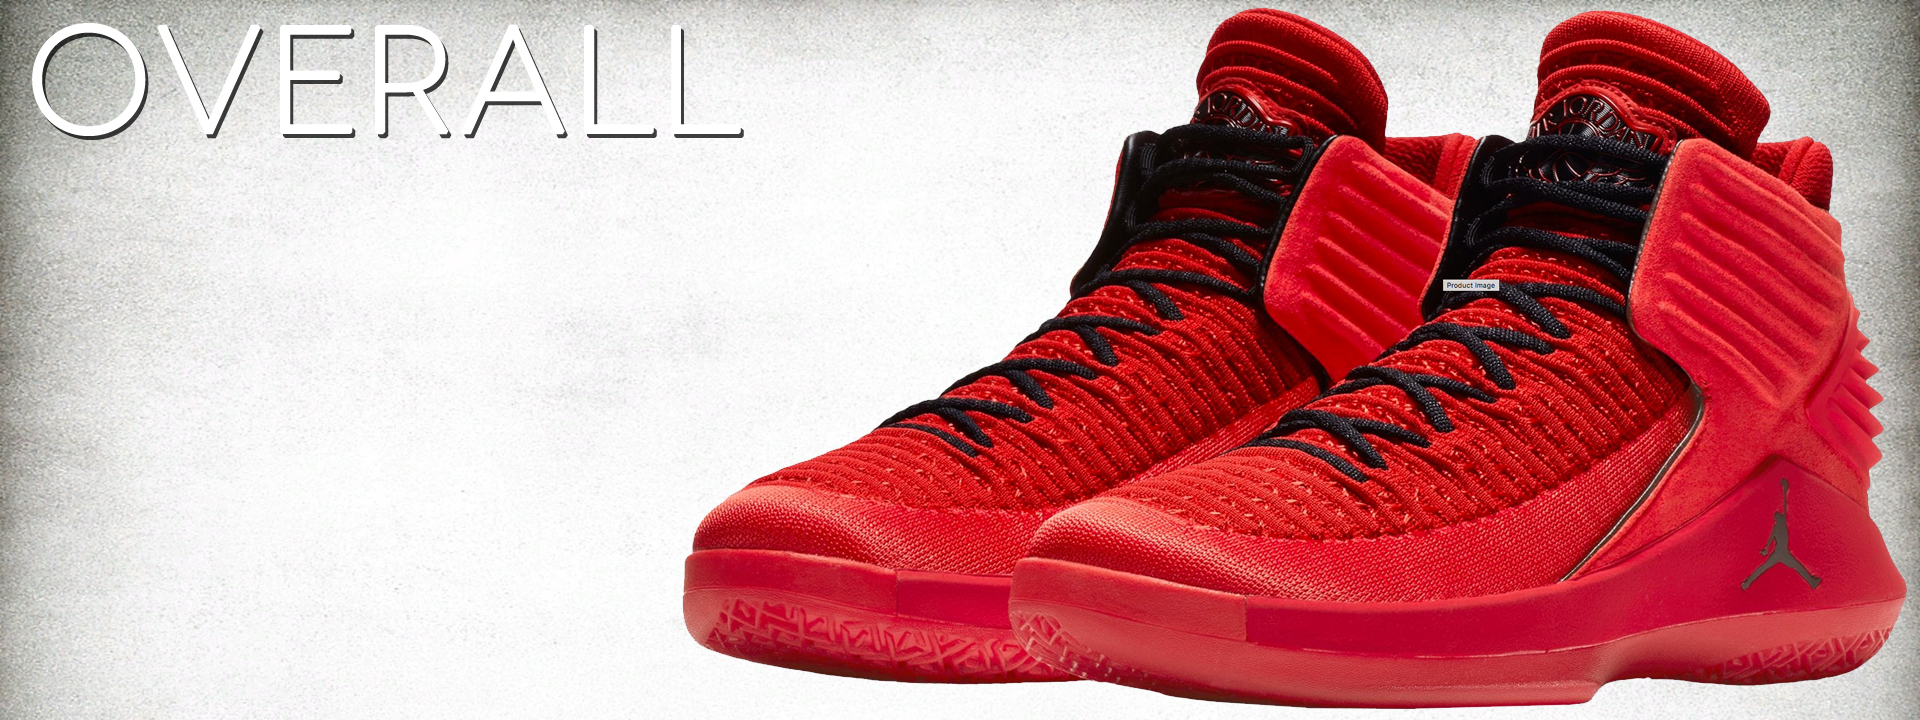 air jordan 32 performance review overall